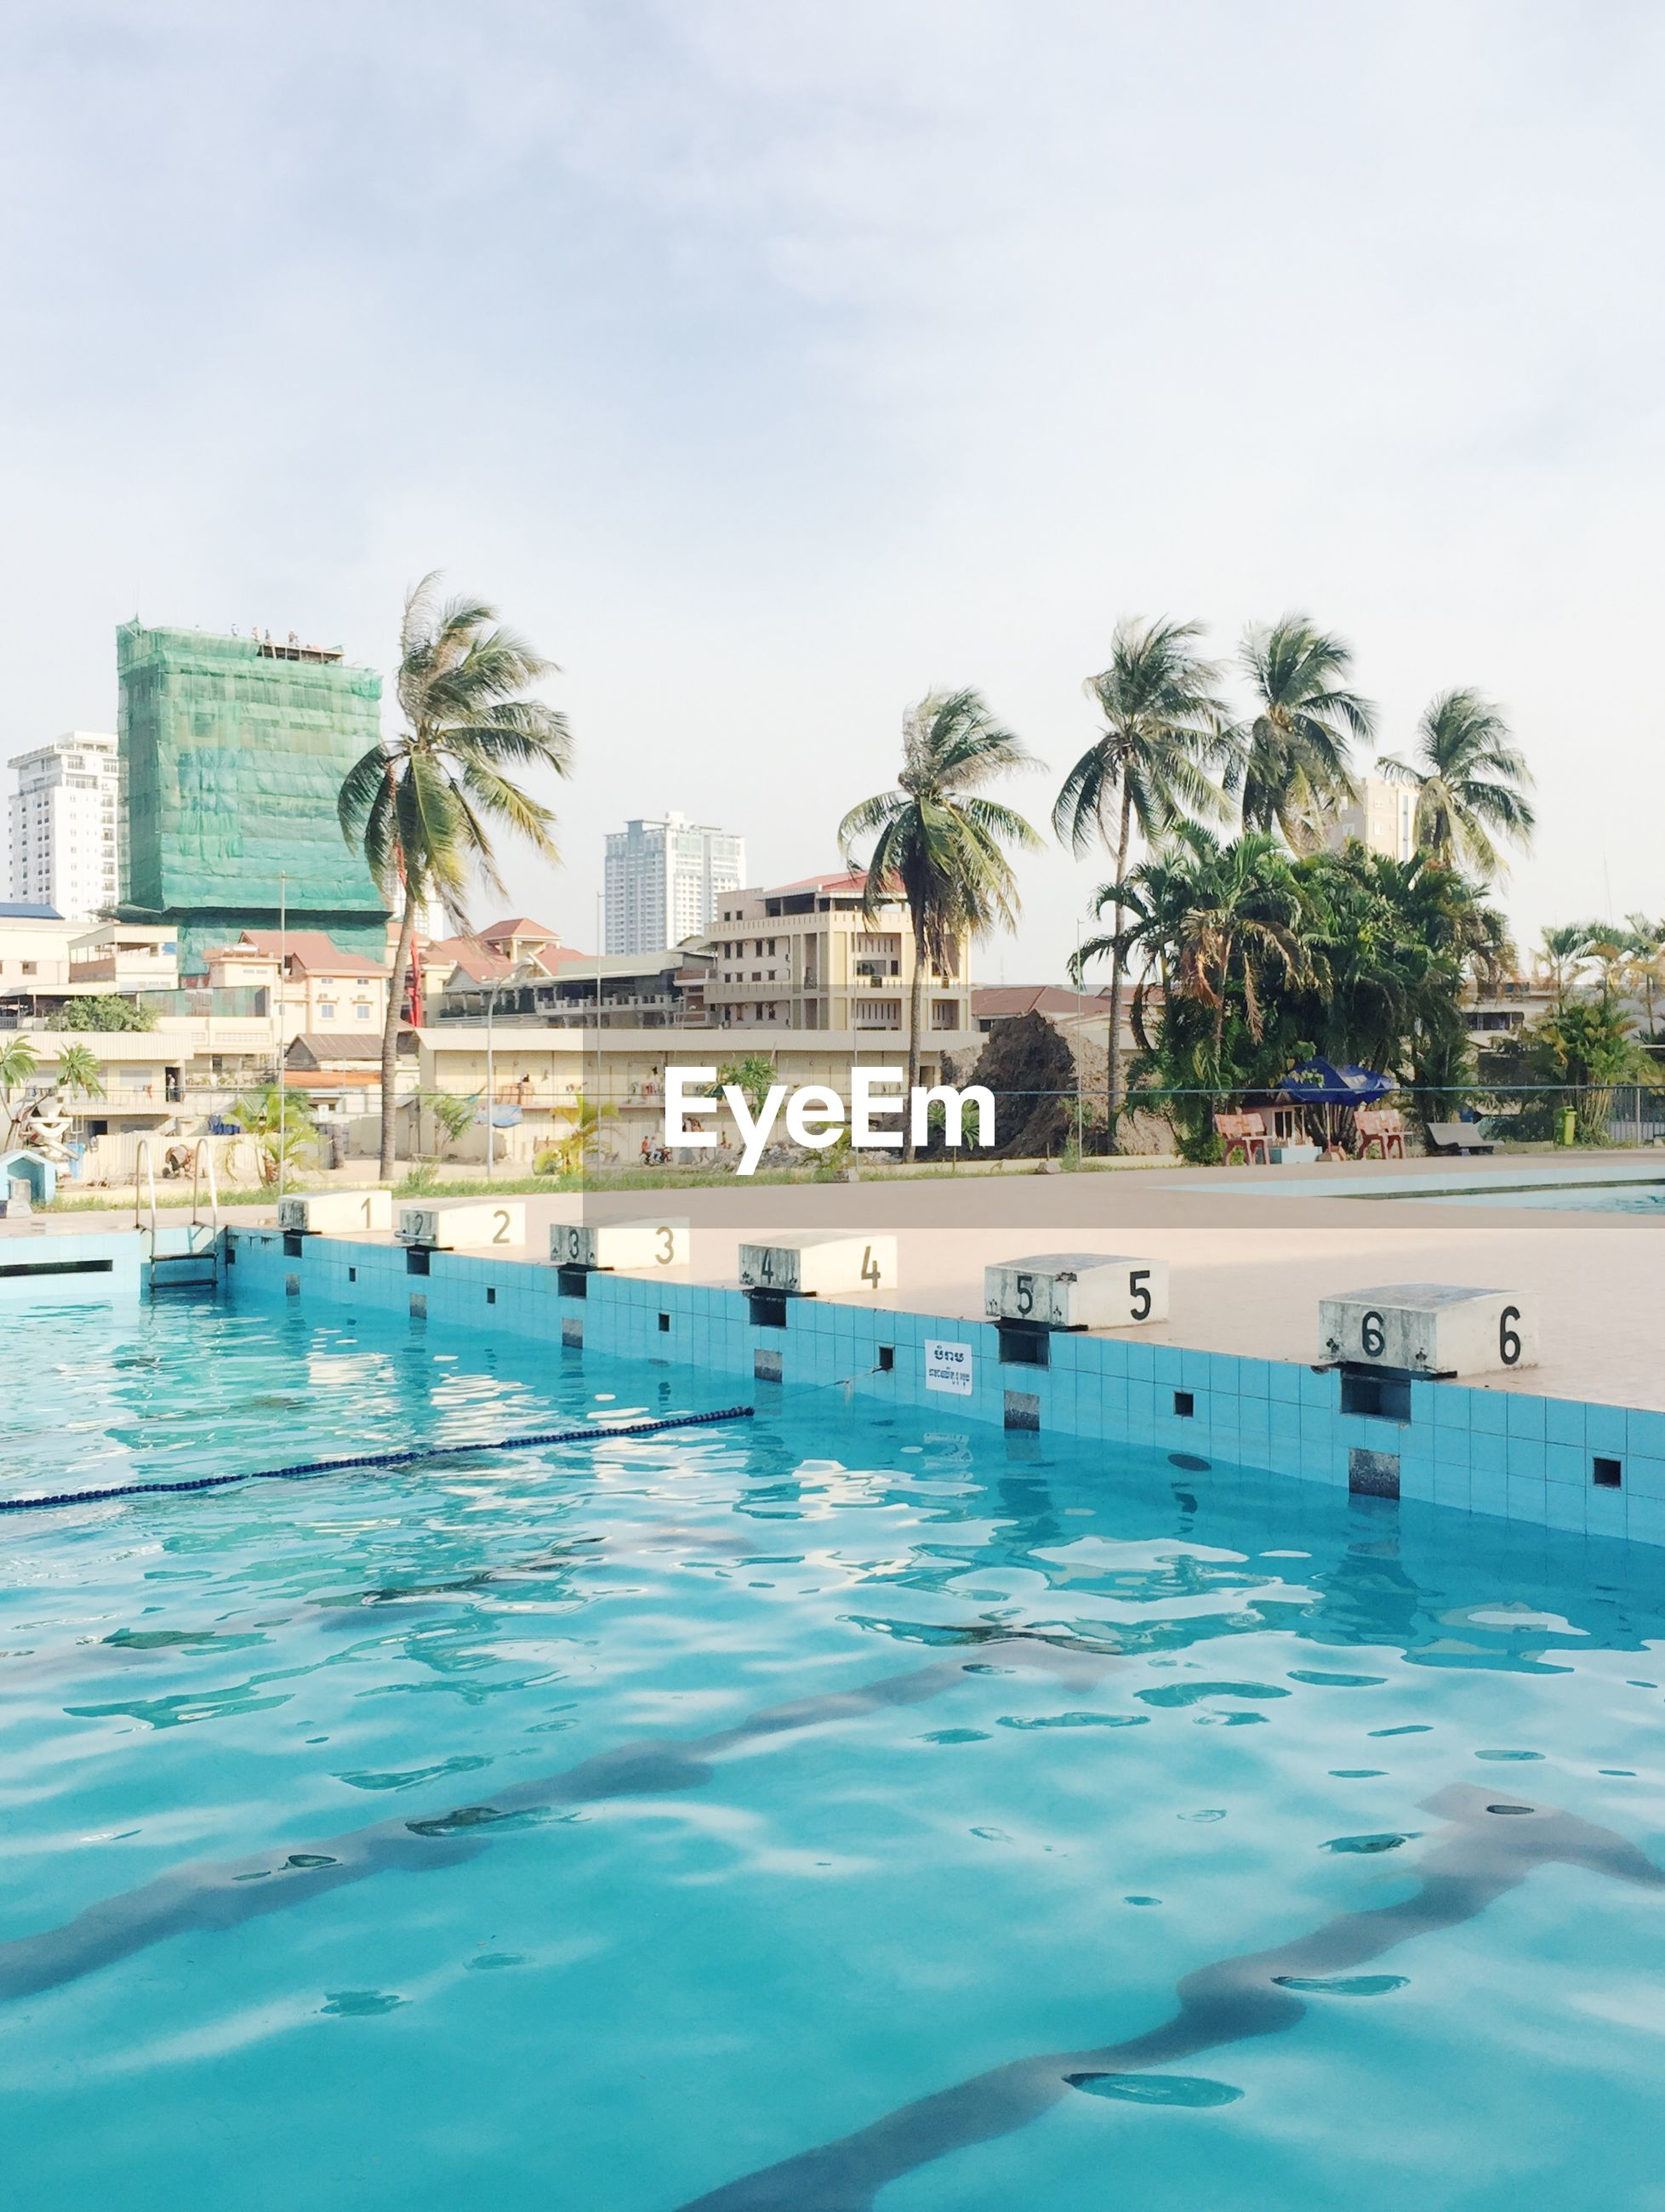 Swimming pool by coconut palm trees in city against sky